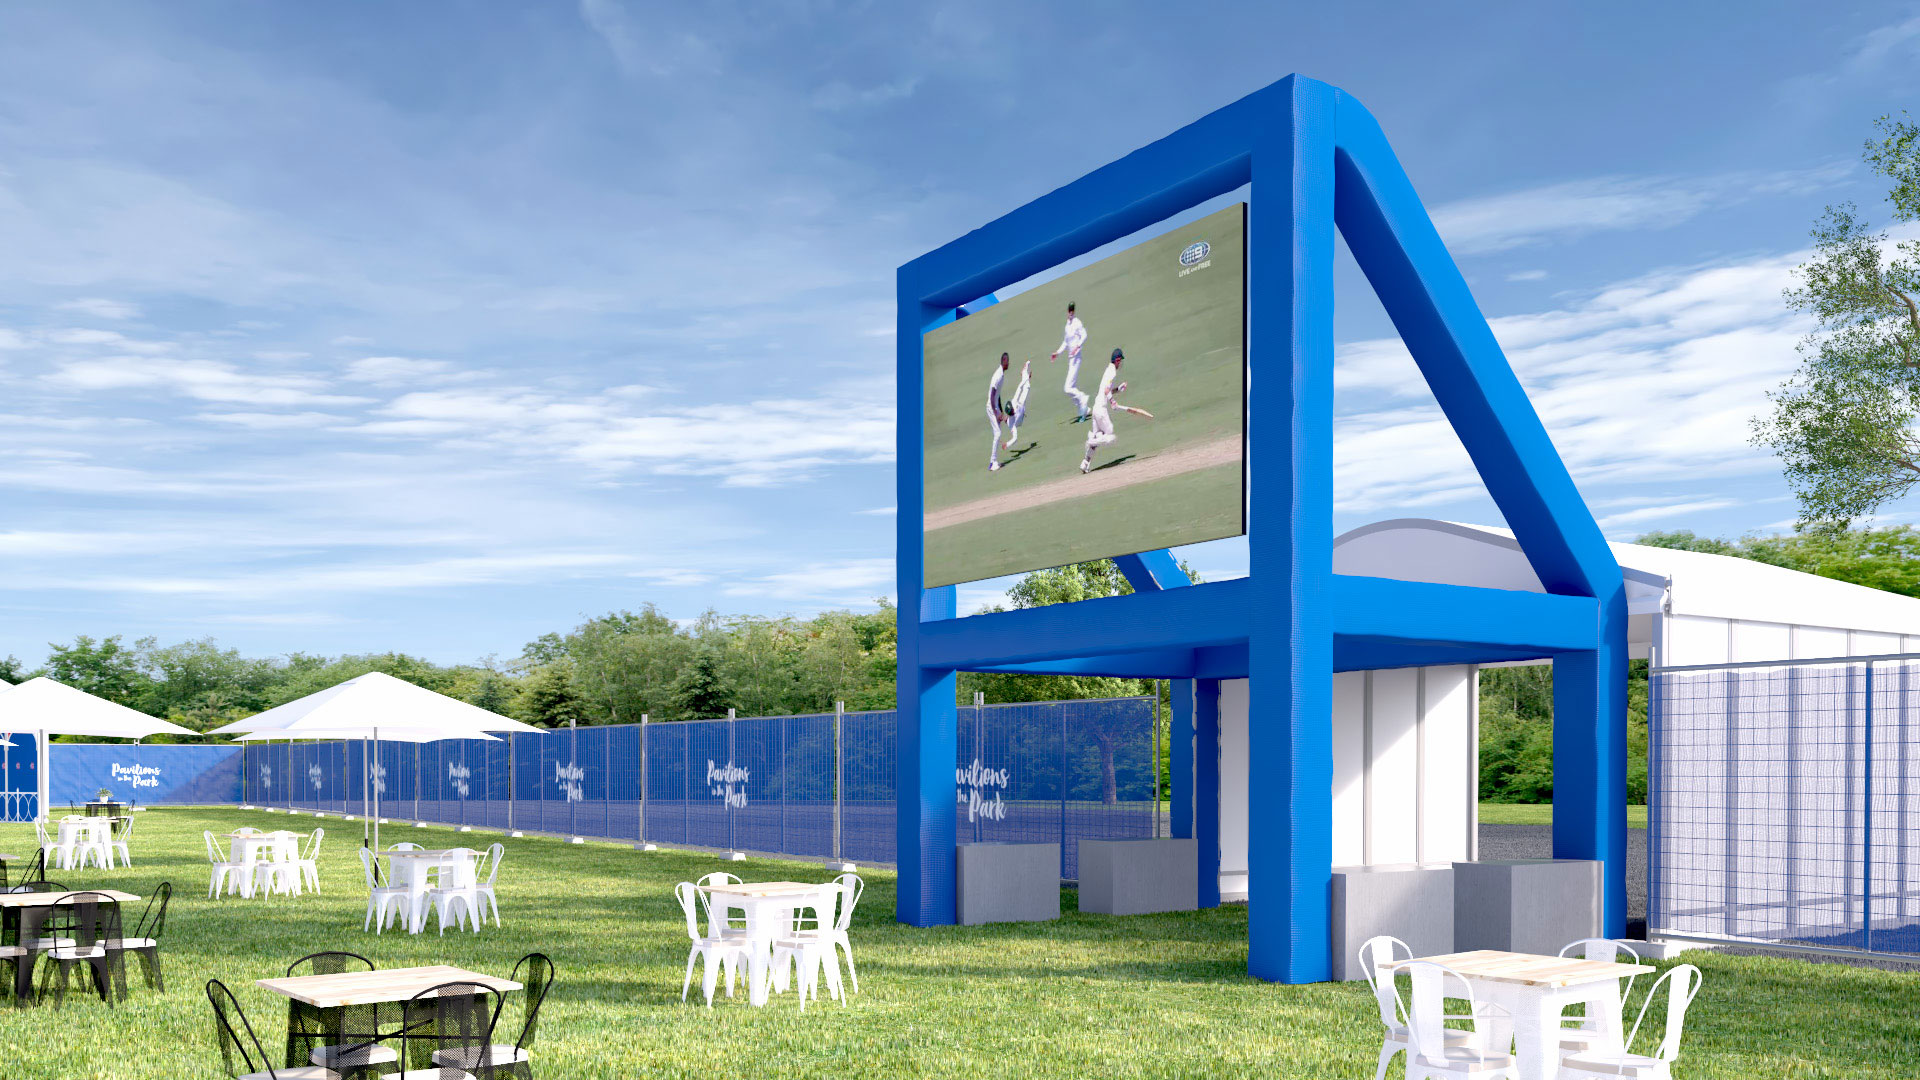 An artist's impression of the hospitality area in Yarra Park for MCC members during the 2017 Boxing Day Test.